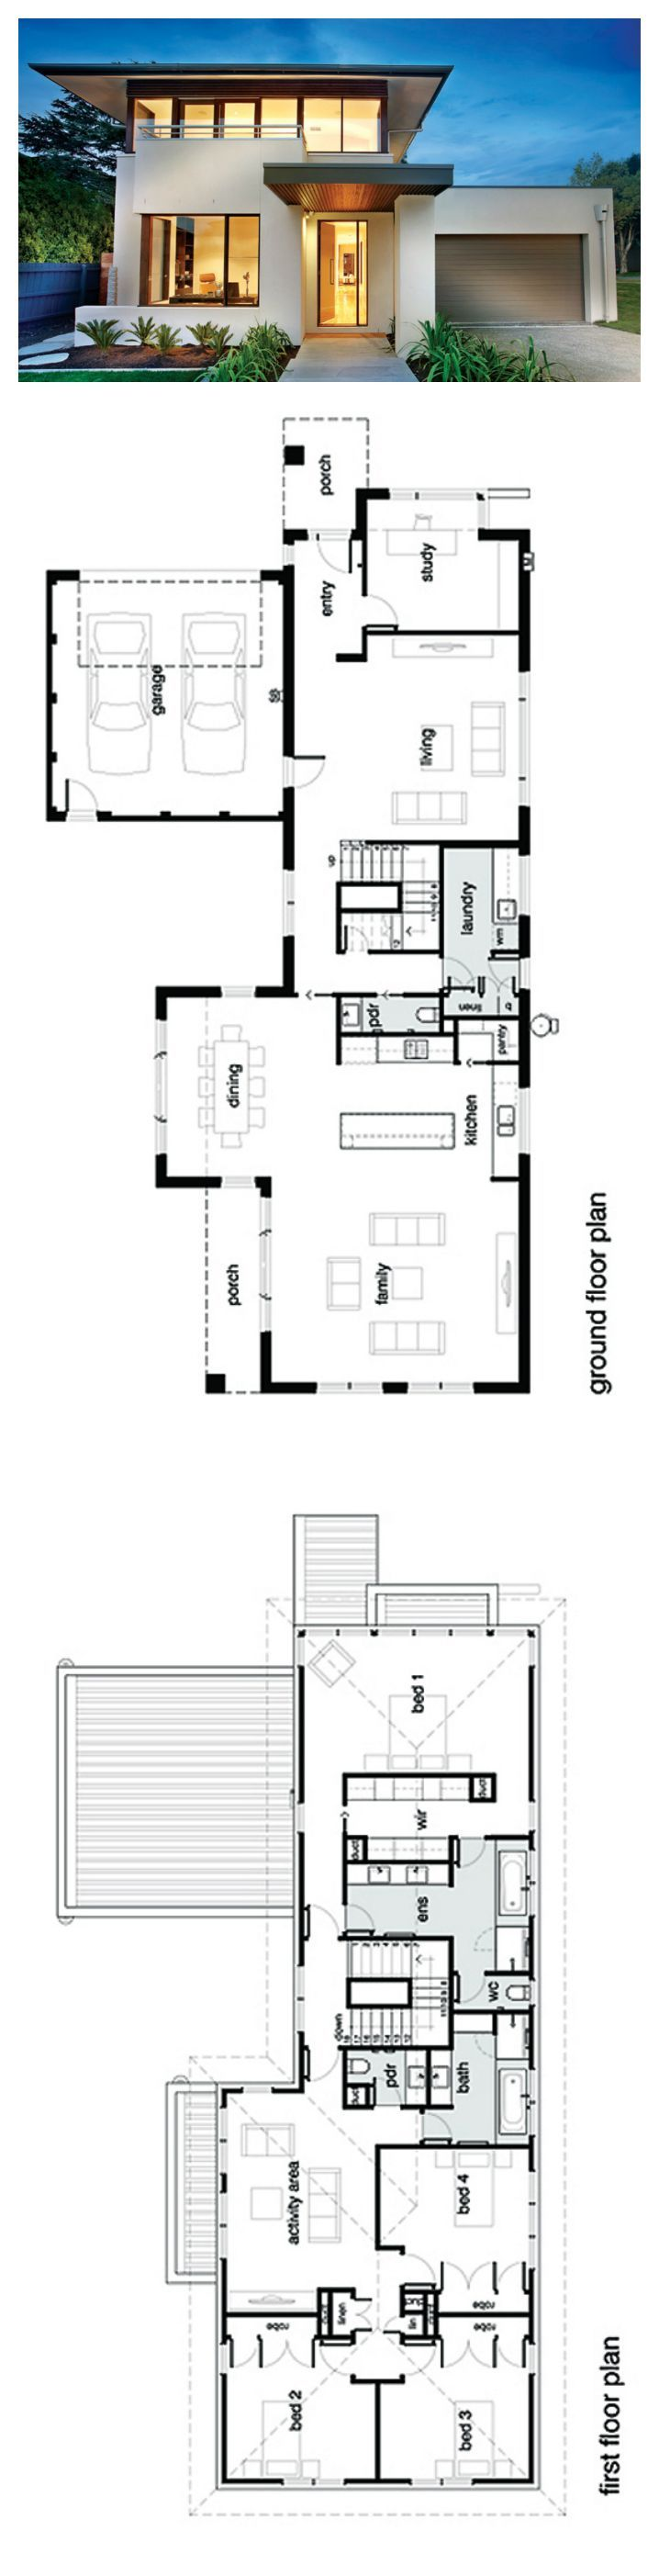 Best 25 modern house plans ideas on pinterest modern for 2 story house layout